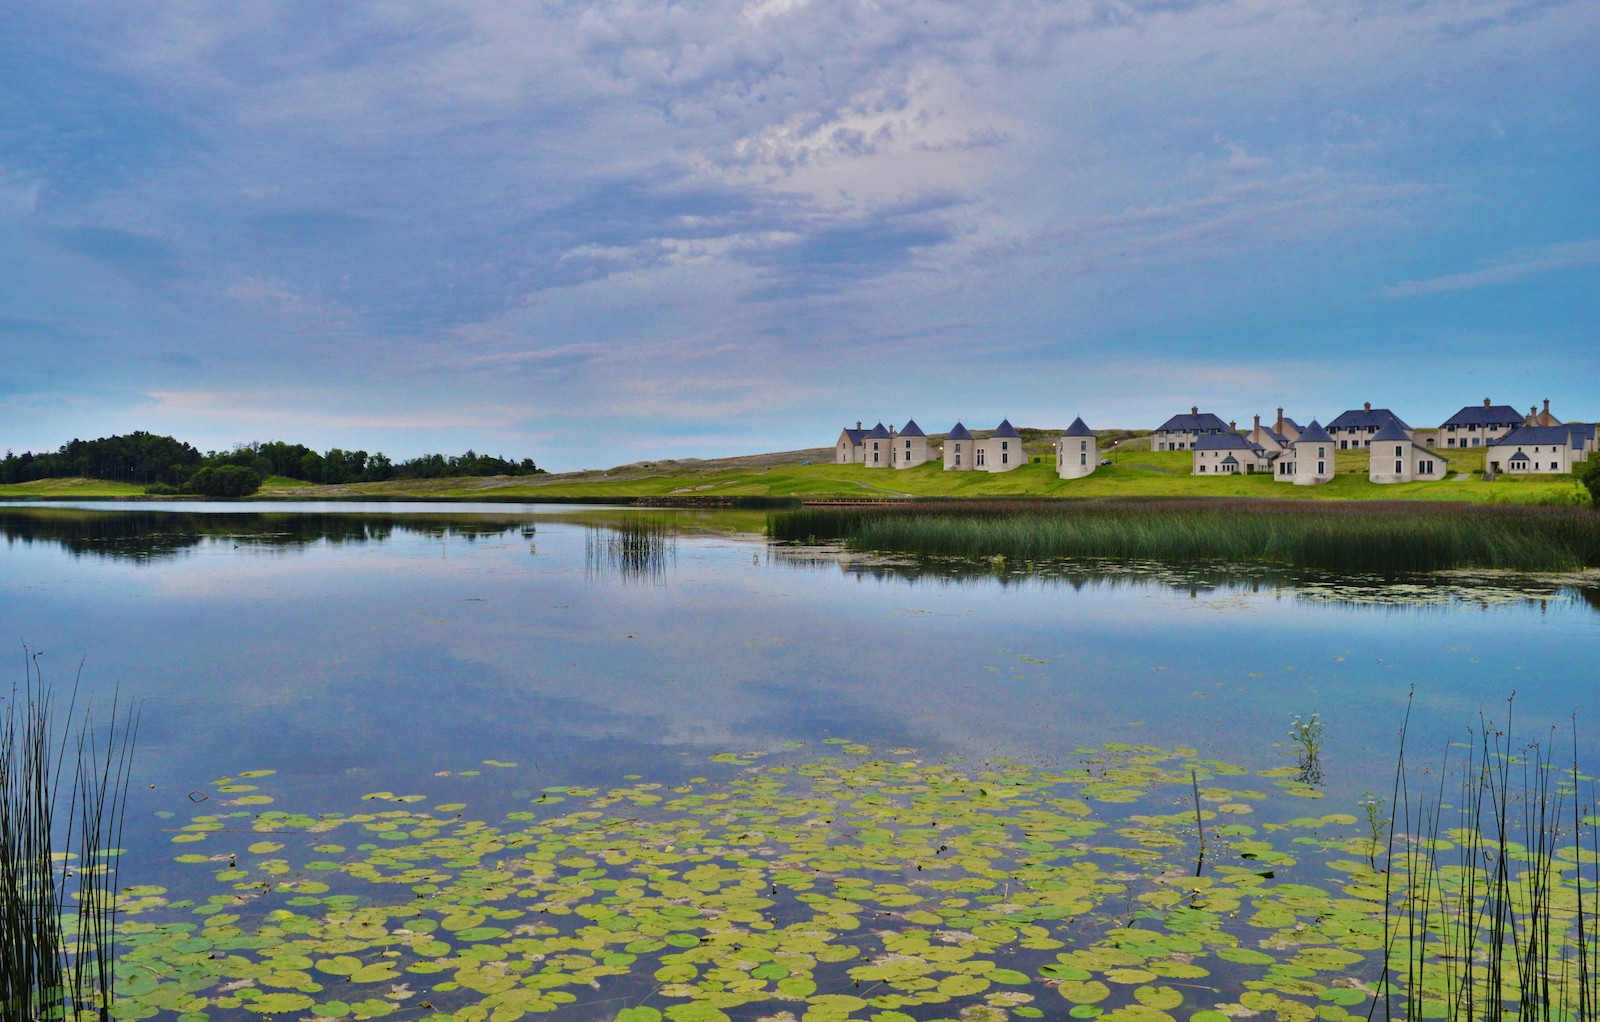 Lough Erne resort, Ireland